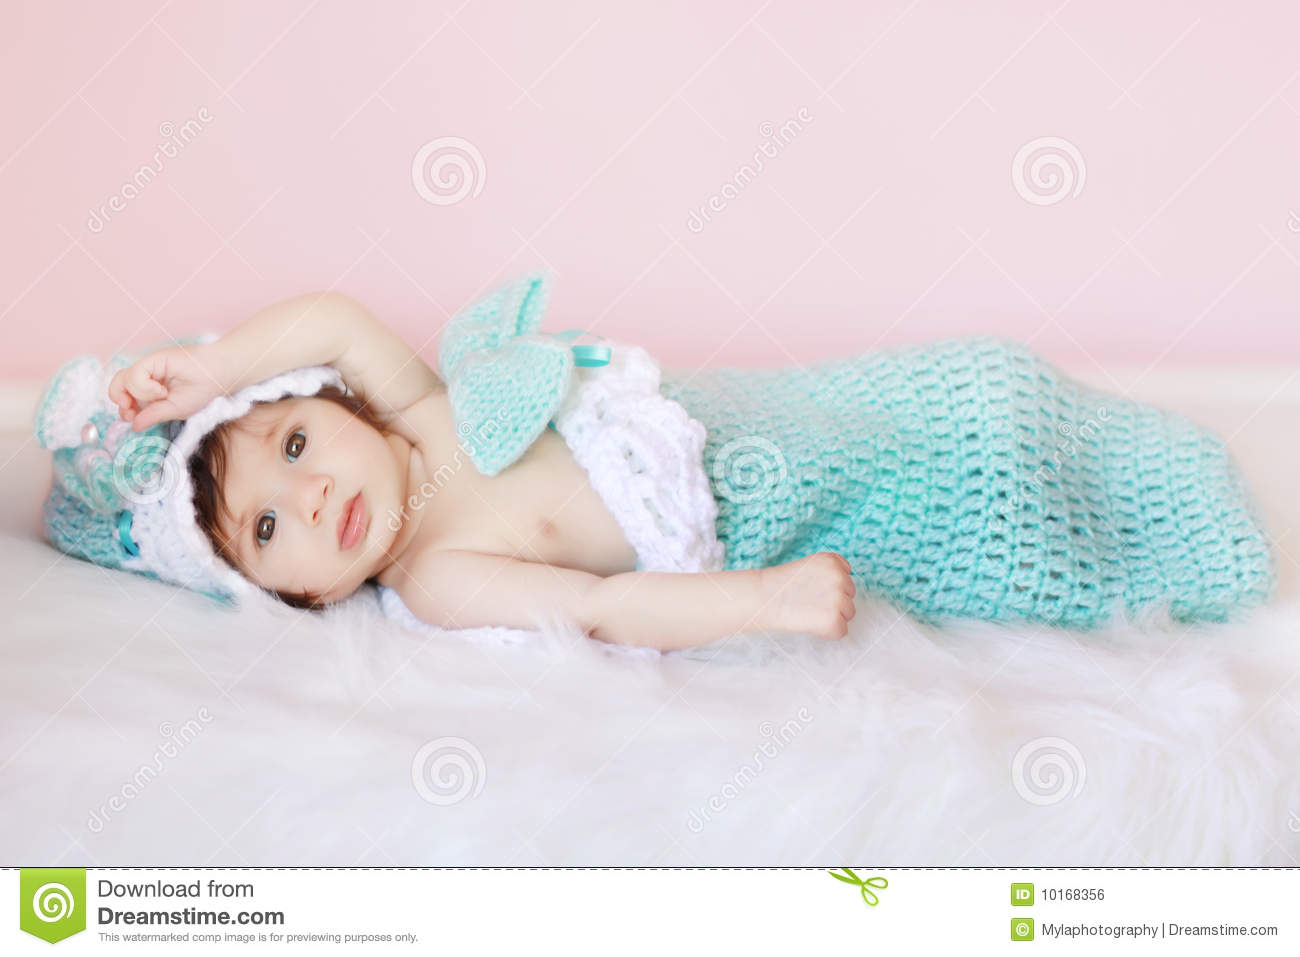 896eb59c597 Baby Cocoon Stock Images - Download 470 Royalty Free Photos